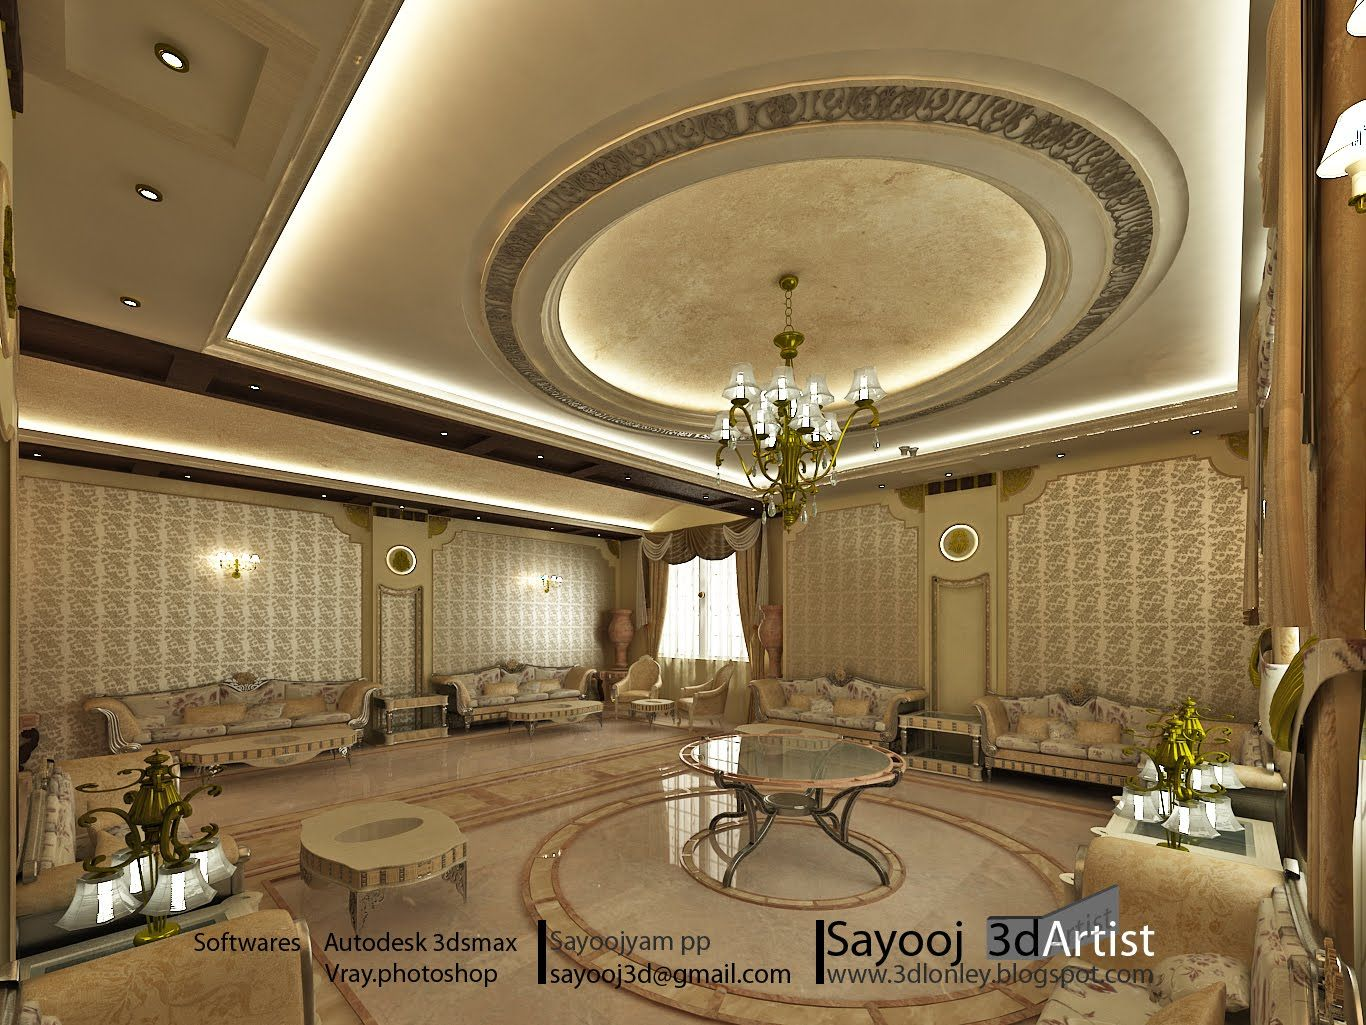 You can have a look at our lavish women majlis designs in the gallery - Arabic Majlis Designs Axis Architecture Designs Arabic Majlis Designs